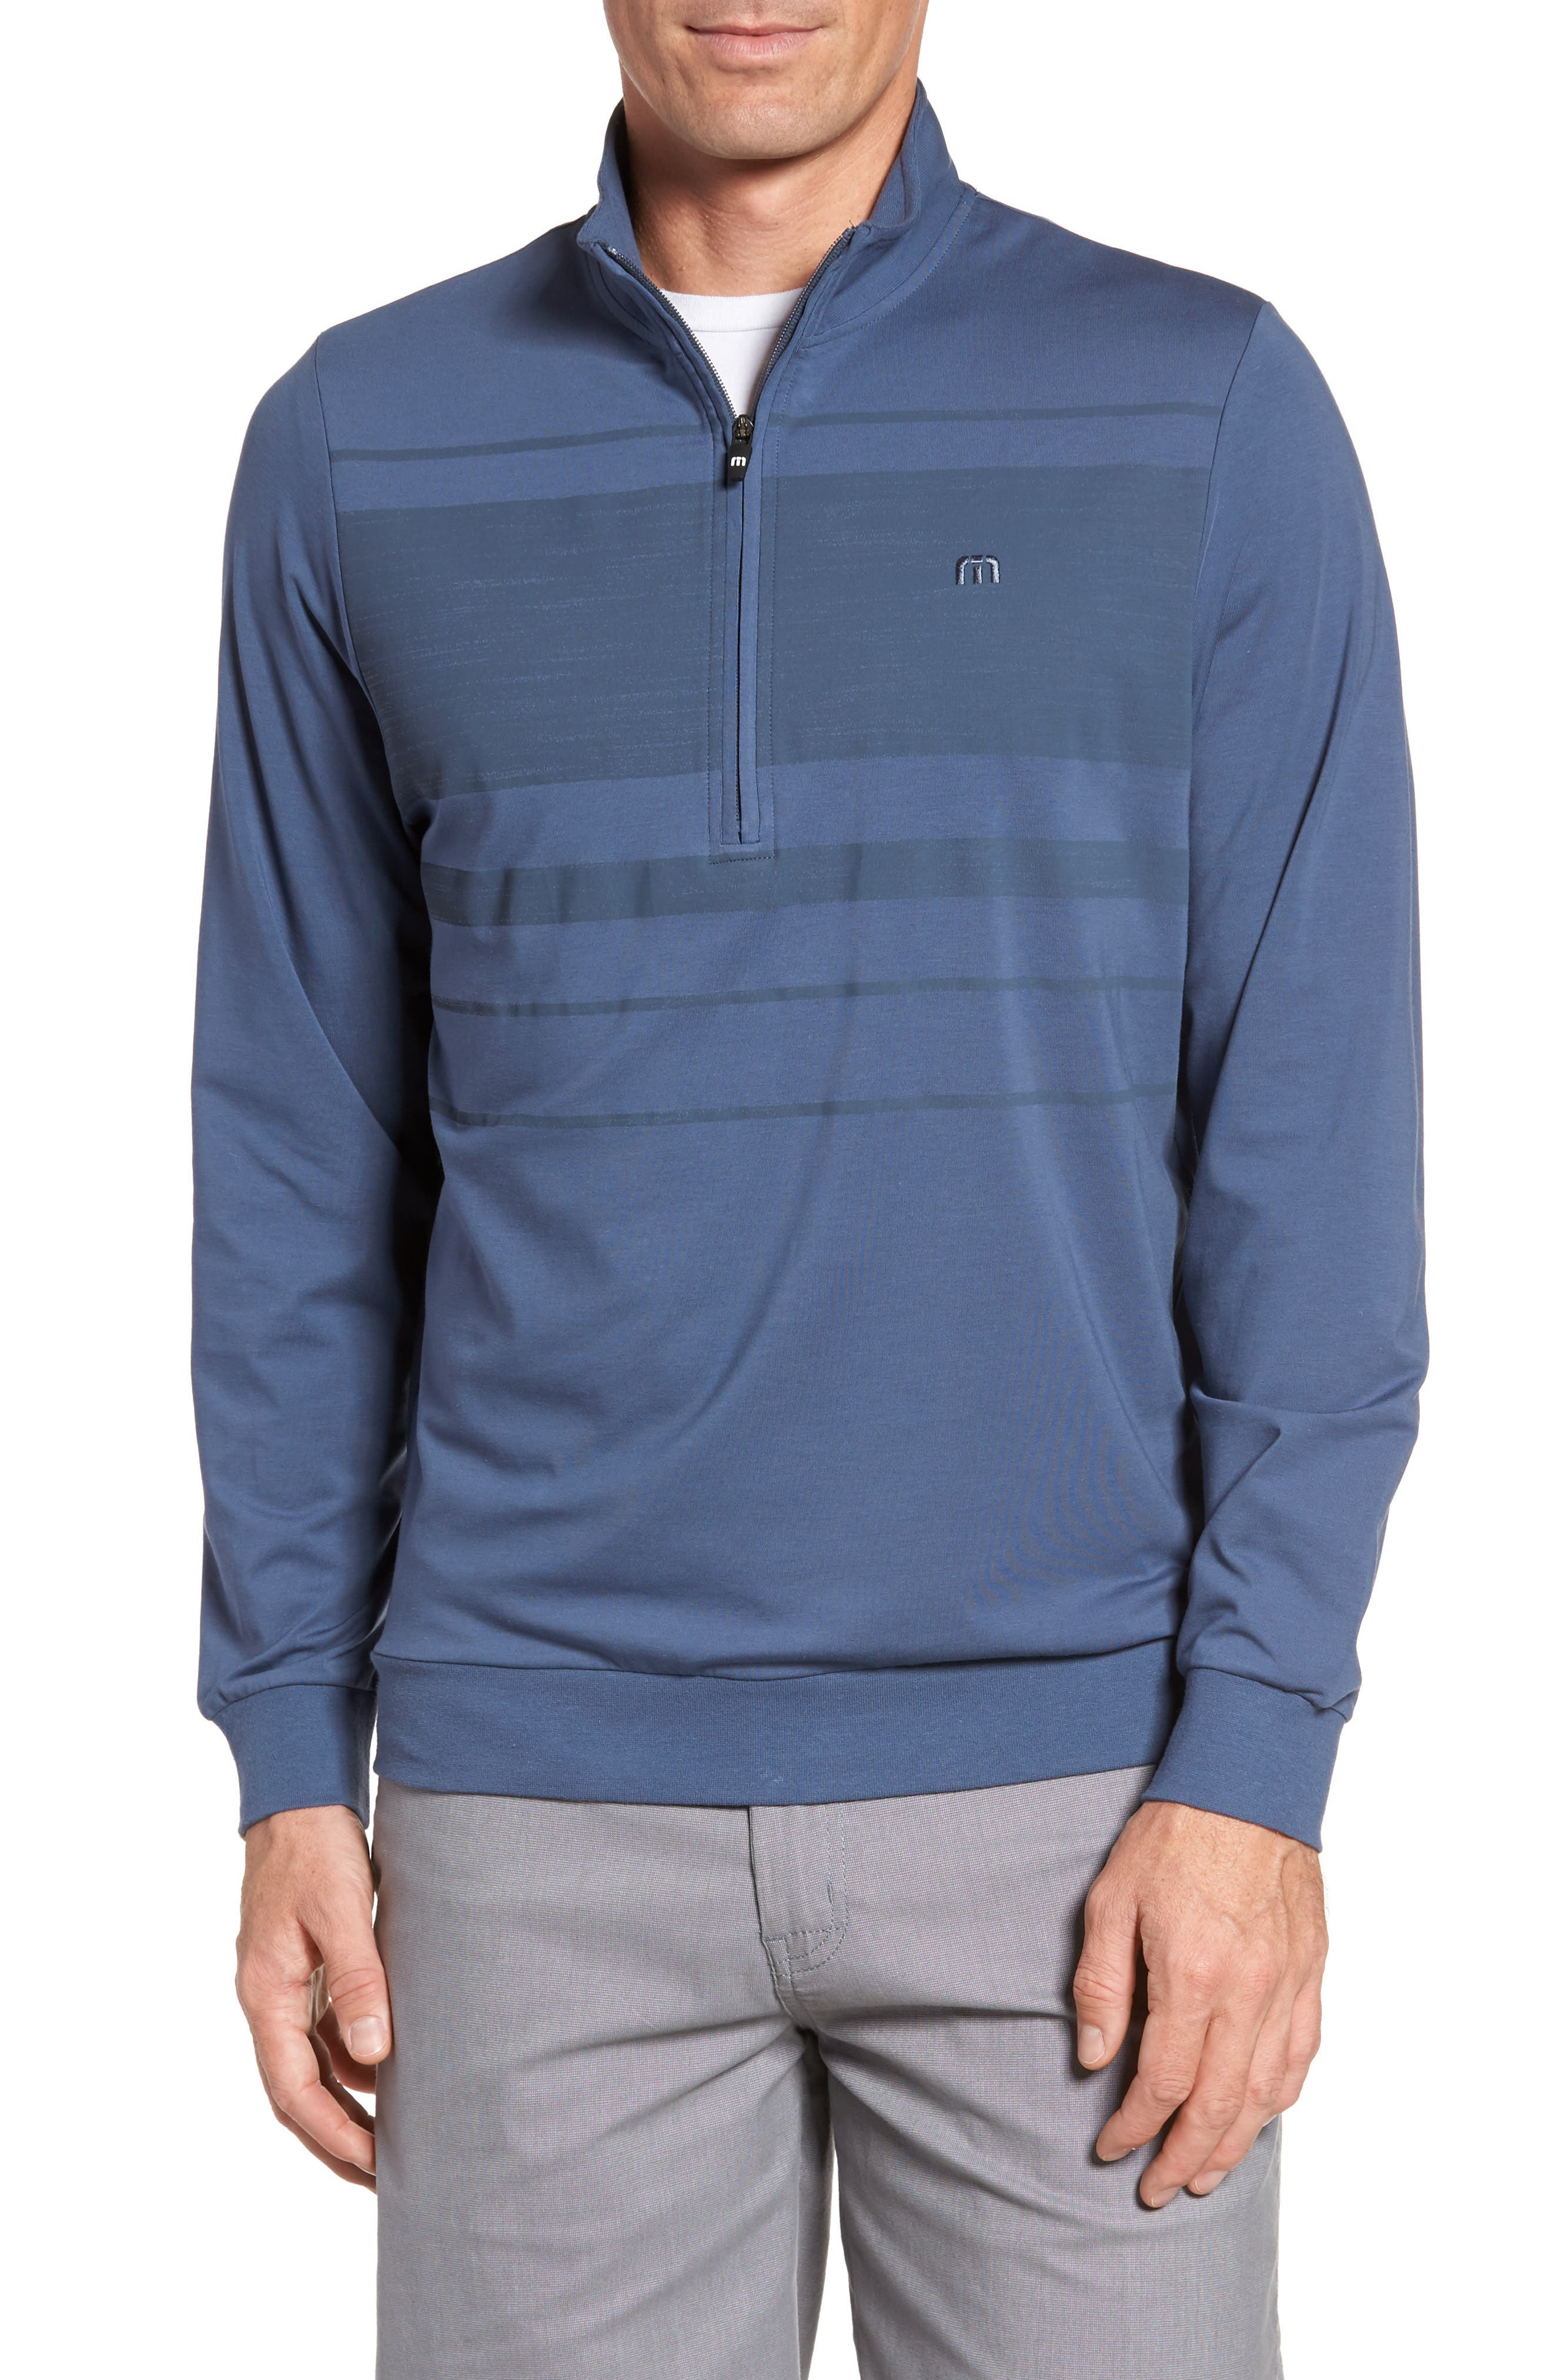 Alternate Image 1 Selected - Travis Mathew Peace Easy Pullover